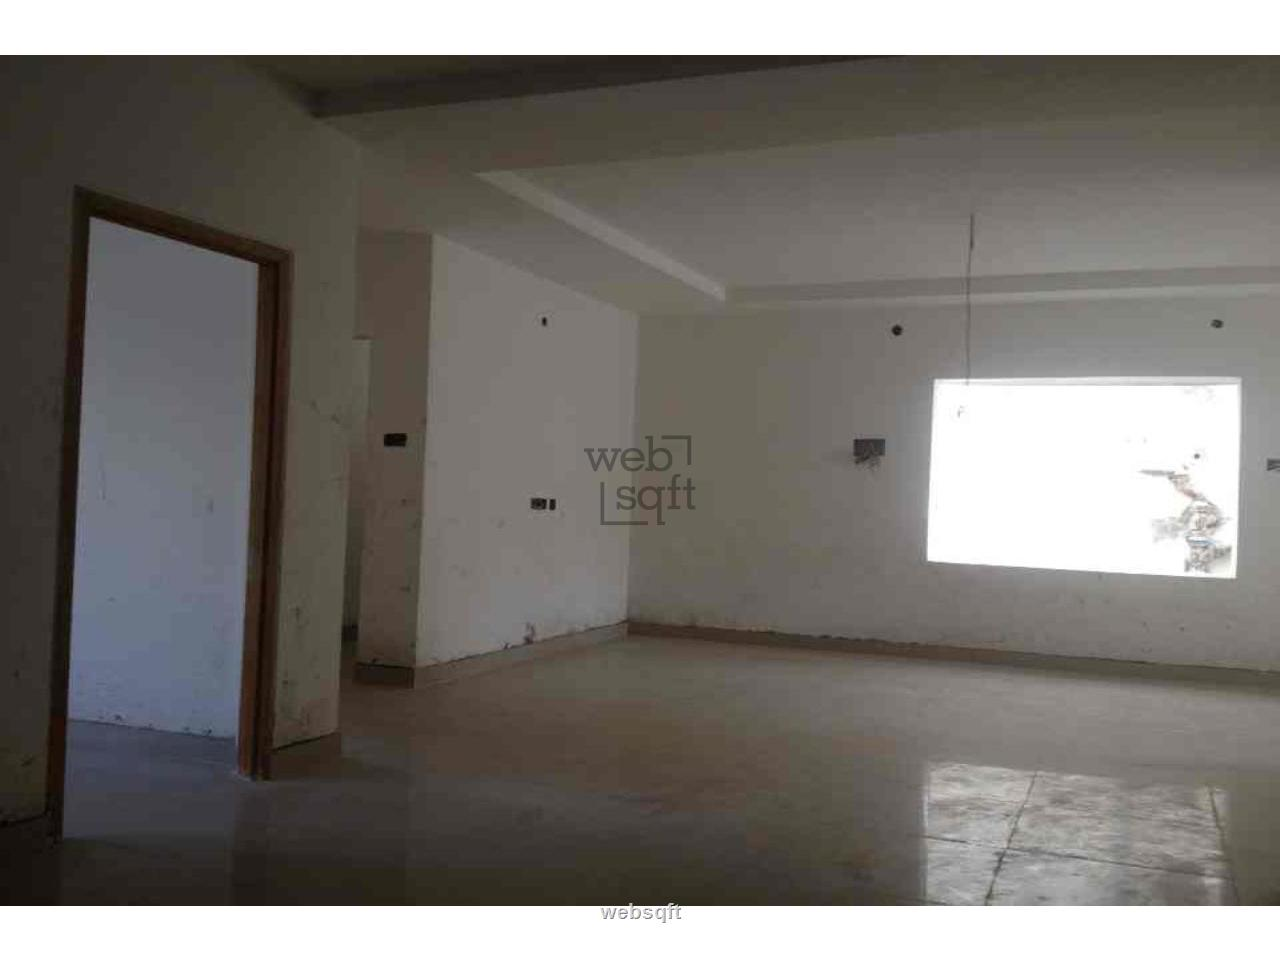 Websqft - Residential Apartment-flats - Property for Sale - in 1800Sq-ft/Dilsukh Nagar at Rs 7200000